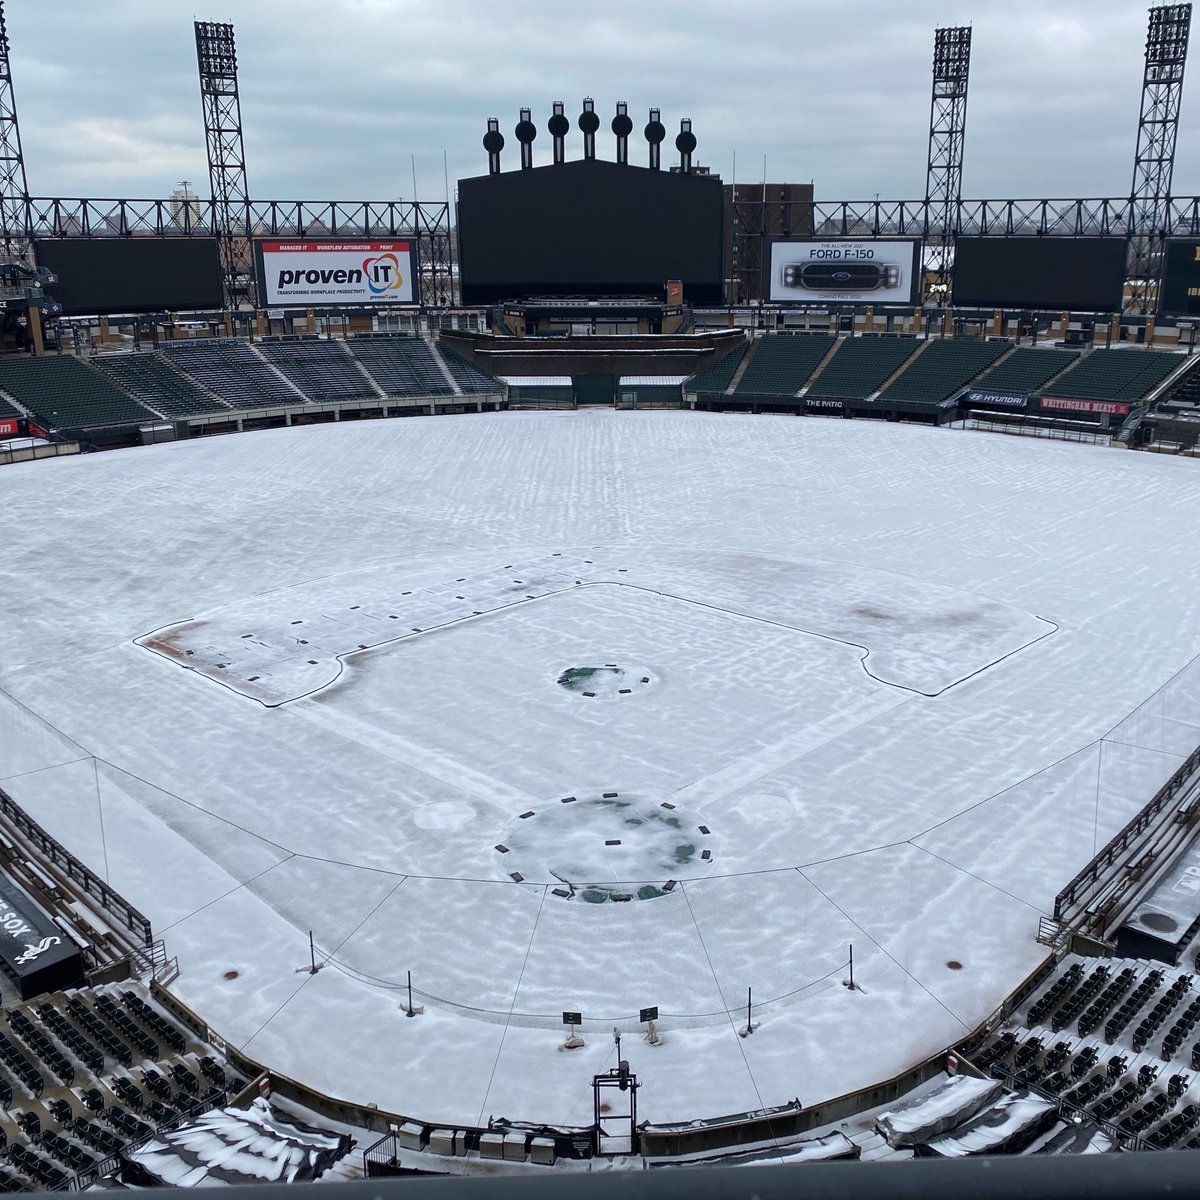 Replying to @whitesox: Dreaming of warmer weather and White Sox baseball... 💭